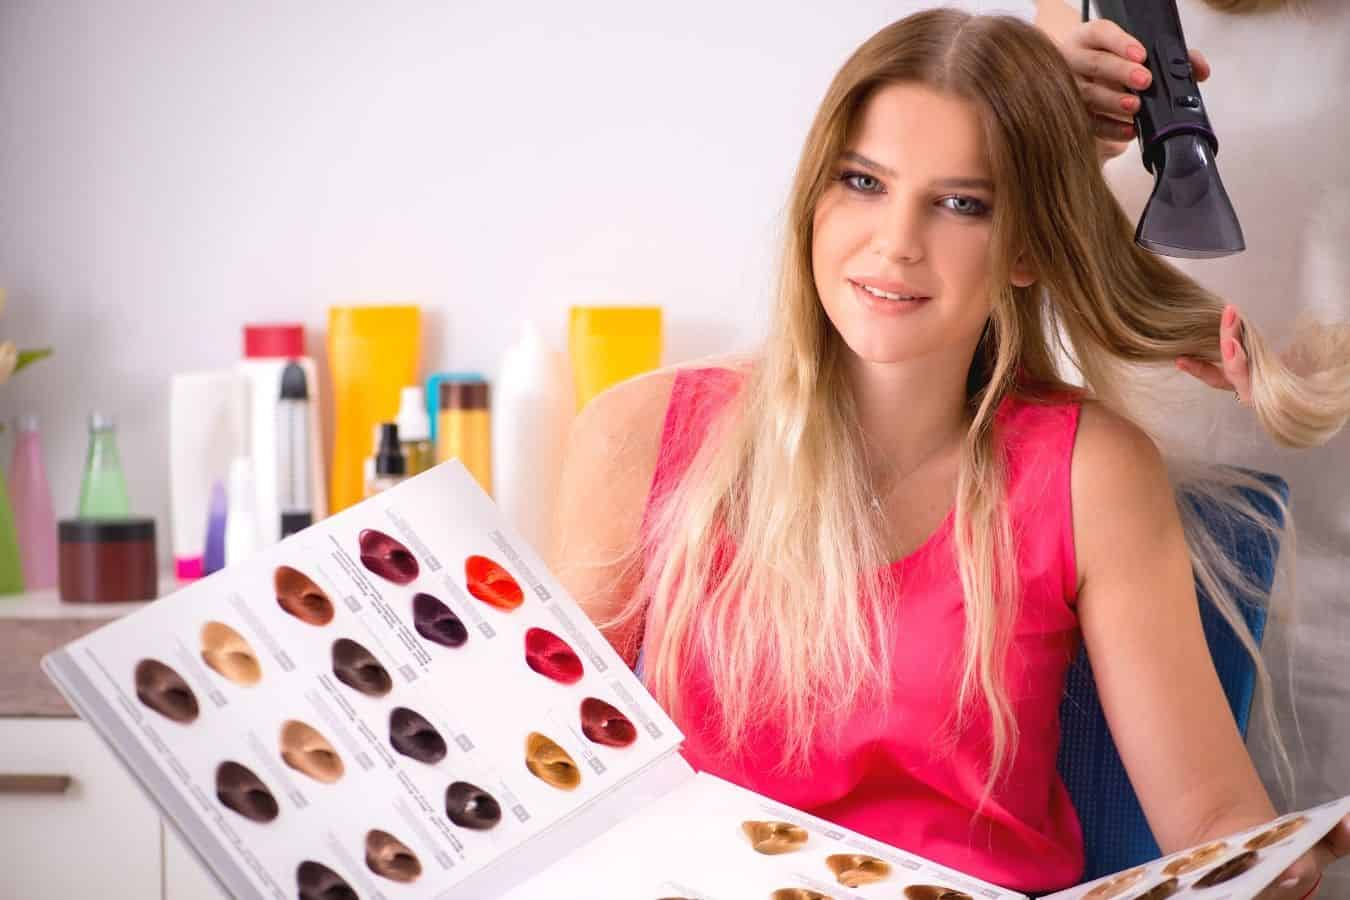 How To Prepare for Dying Your Hair at the Salon